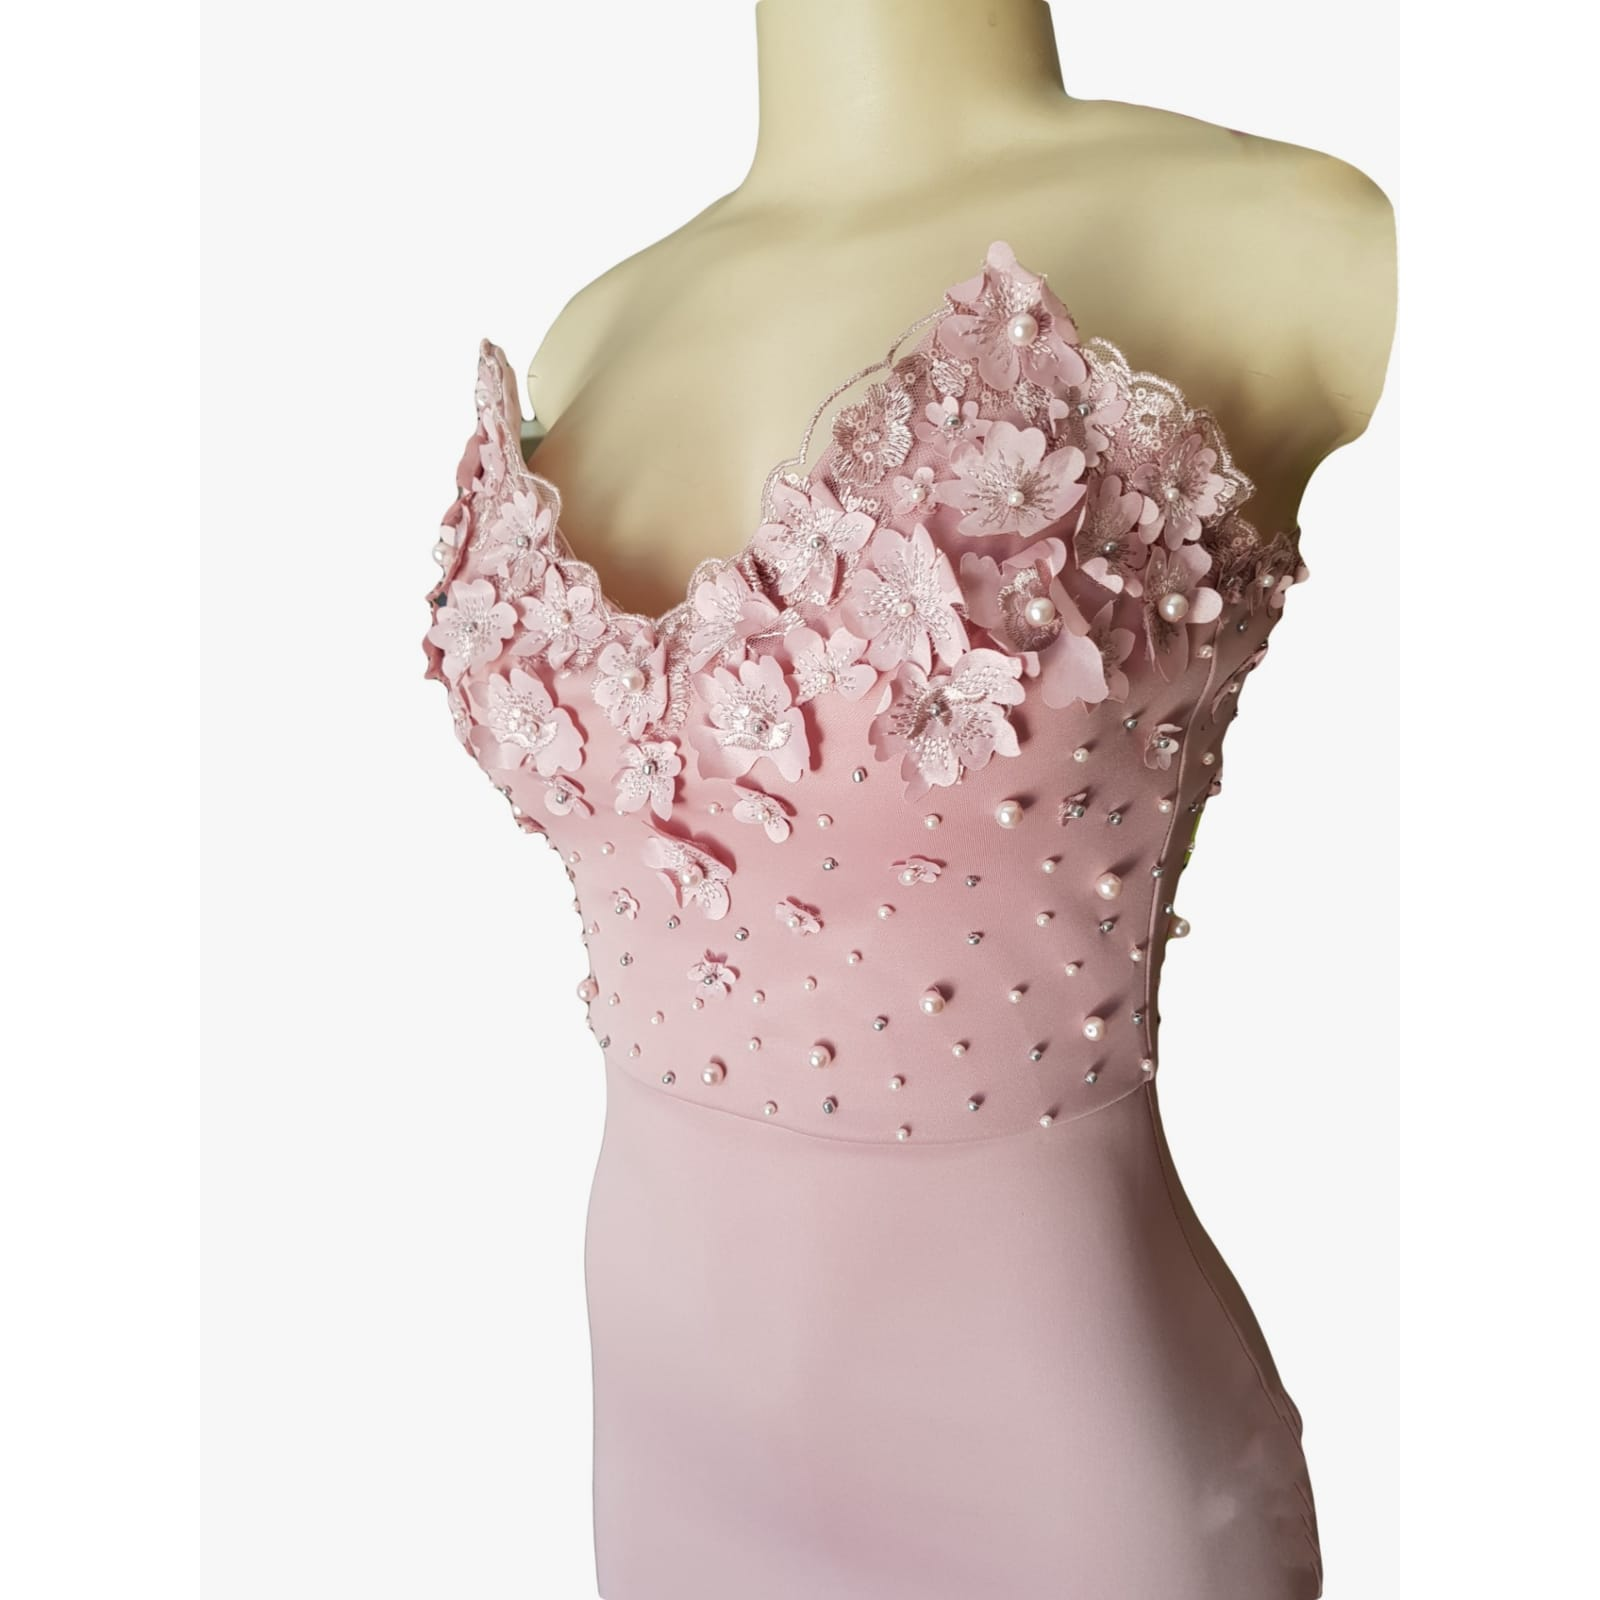 Pale pink soft mermaid matric dance dress 7 pale pink soft mermaid matric dance dress, bodice detailed with pearls and 3d lace, with a train and detachable neck strap.